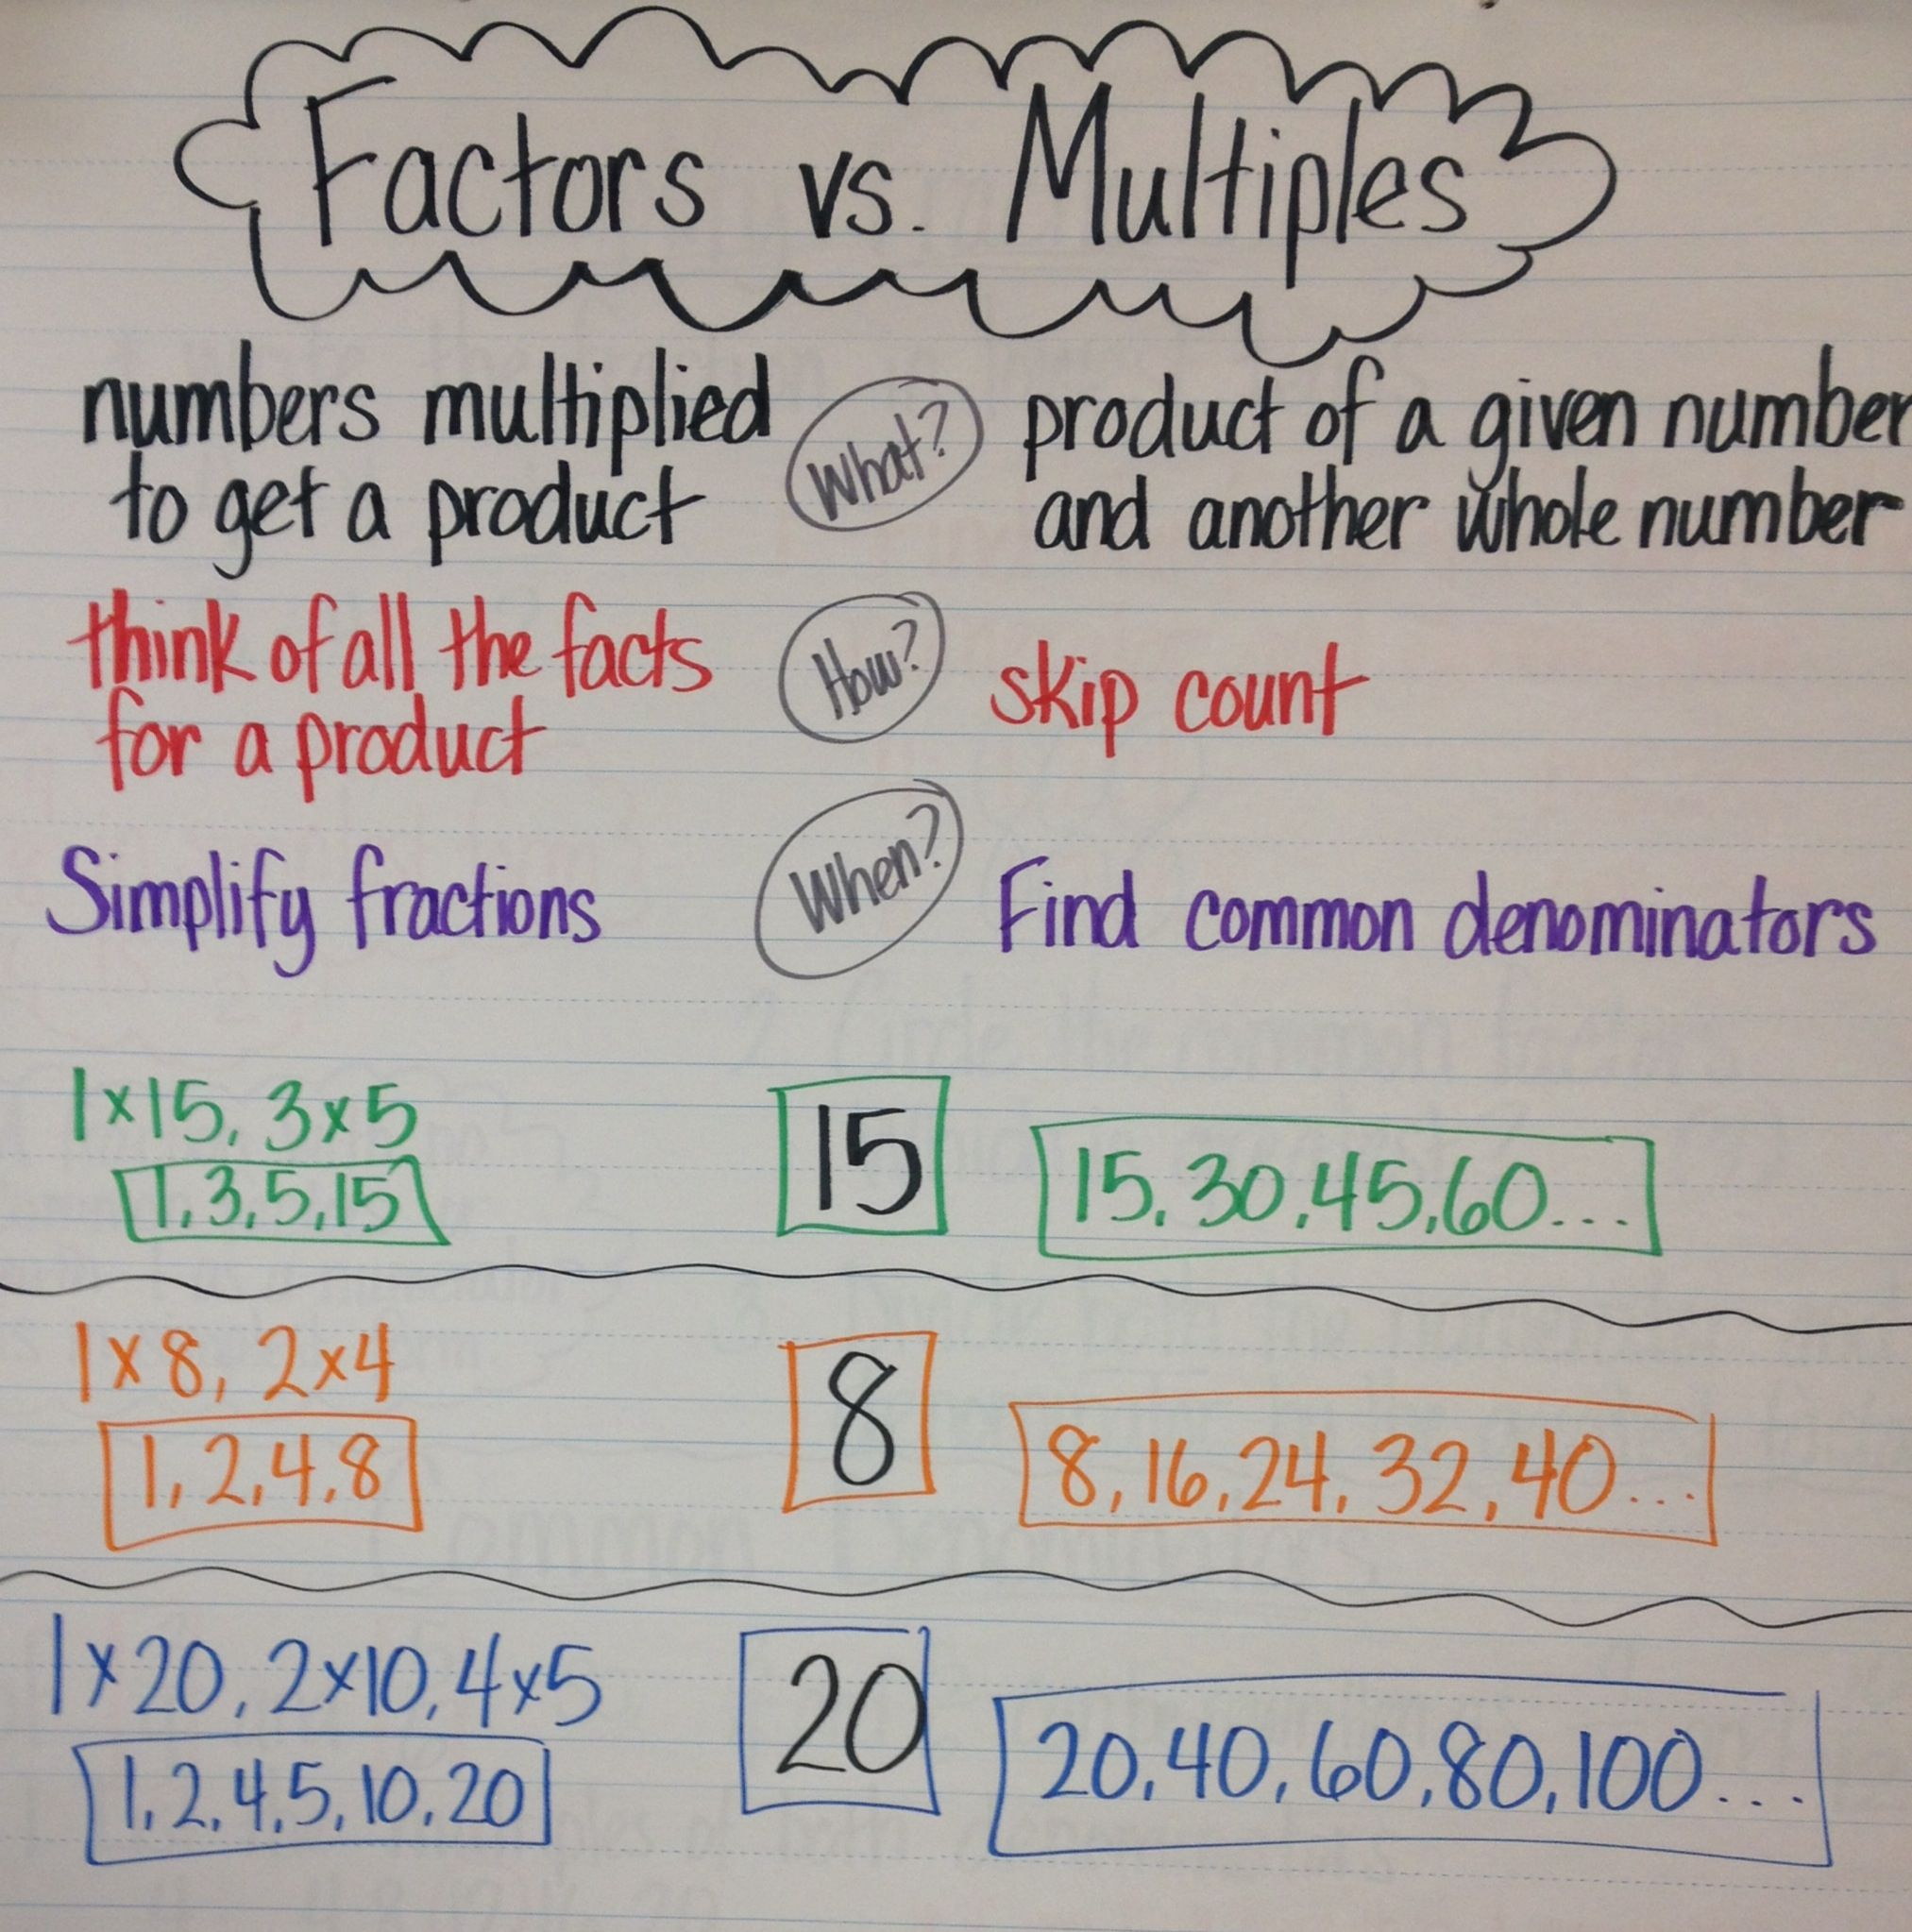 explain the relationship between factors and multiples